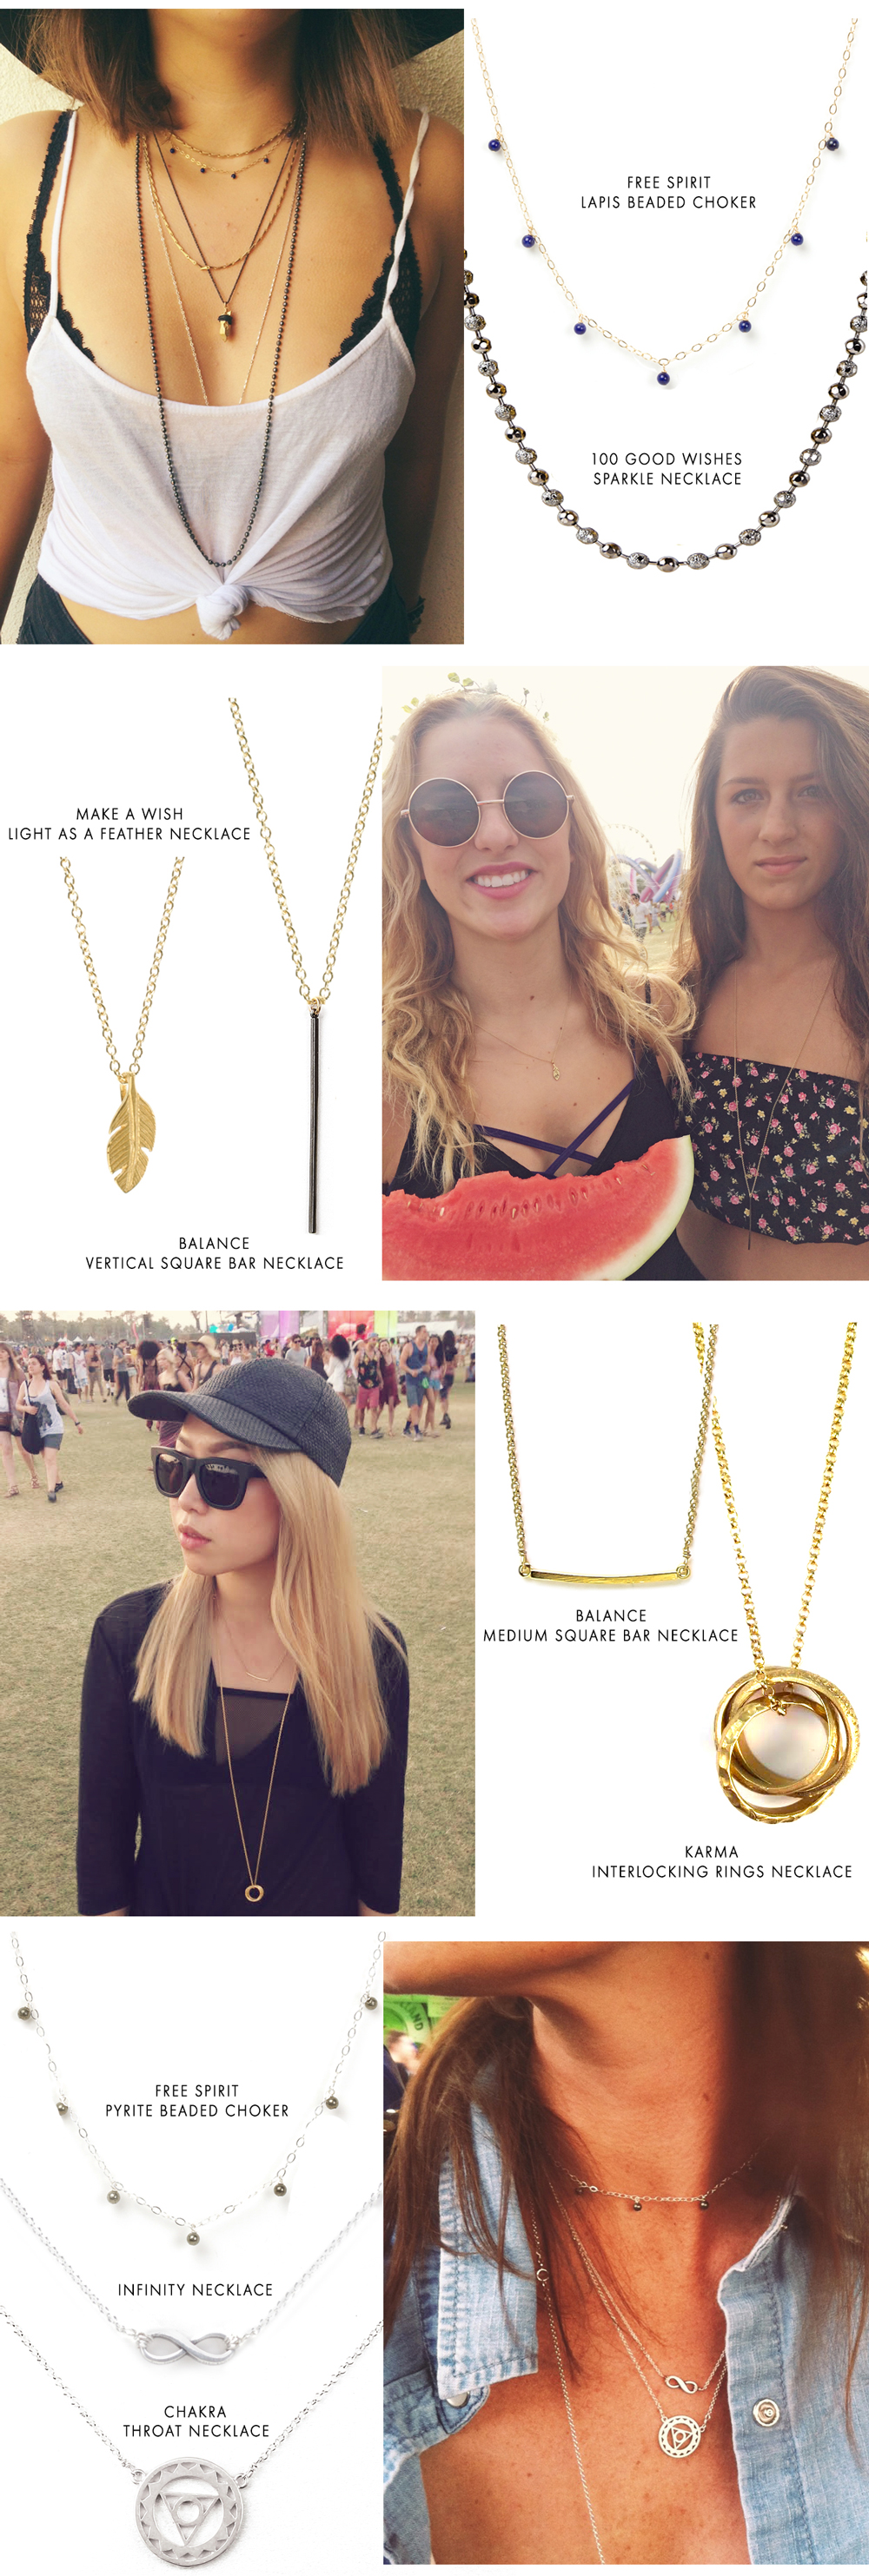 spotted-at-coachella-WKND2-part-2